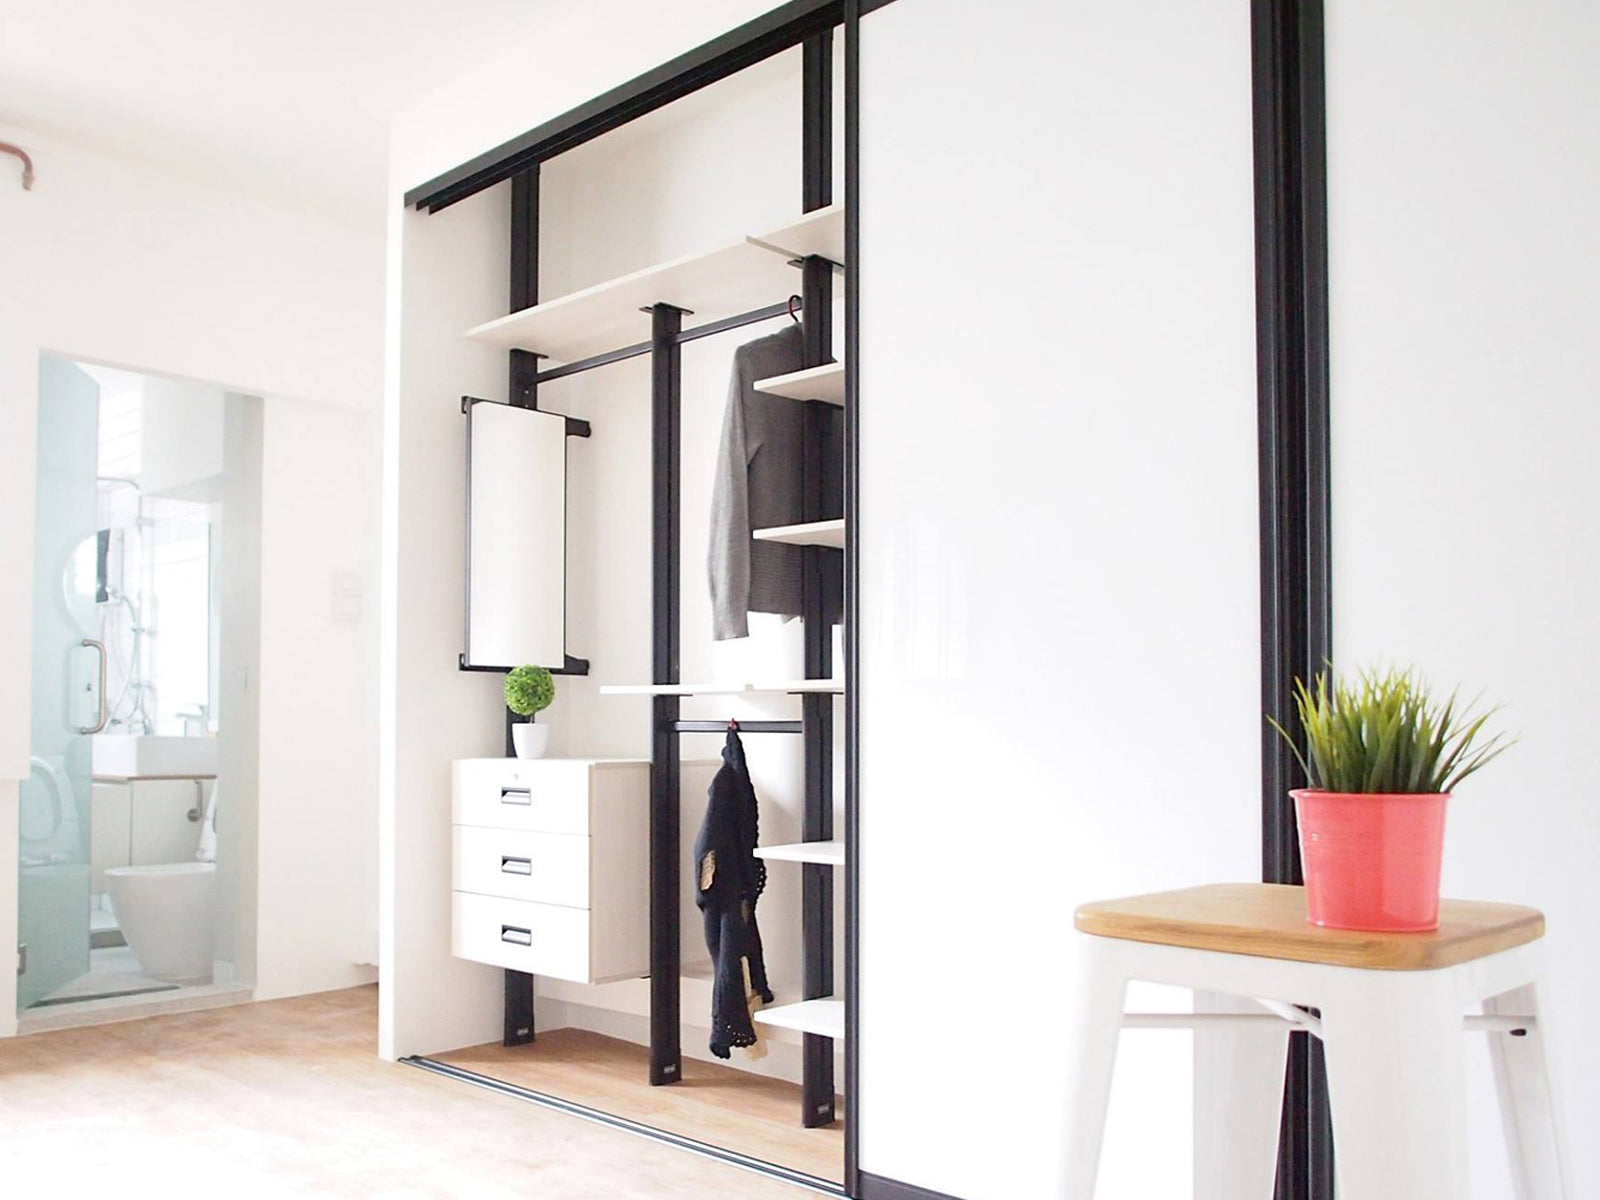 10 Ways To Design A Wardrobe For Small Spaces